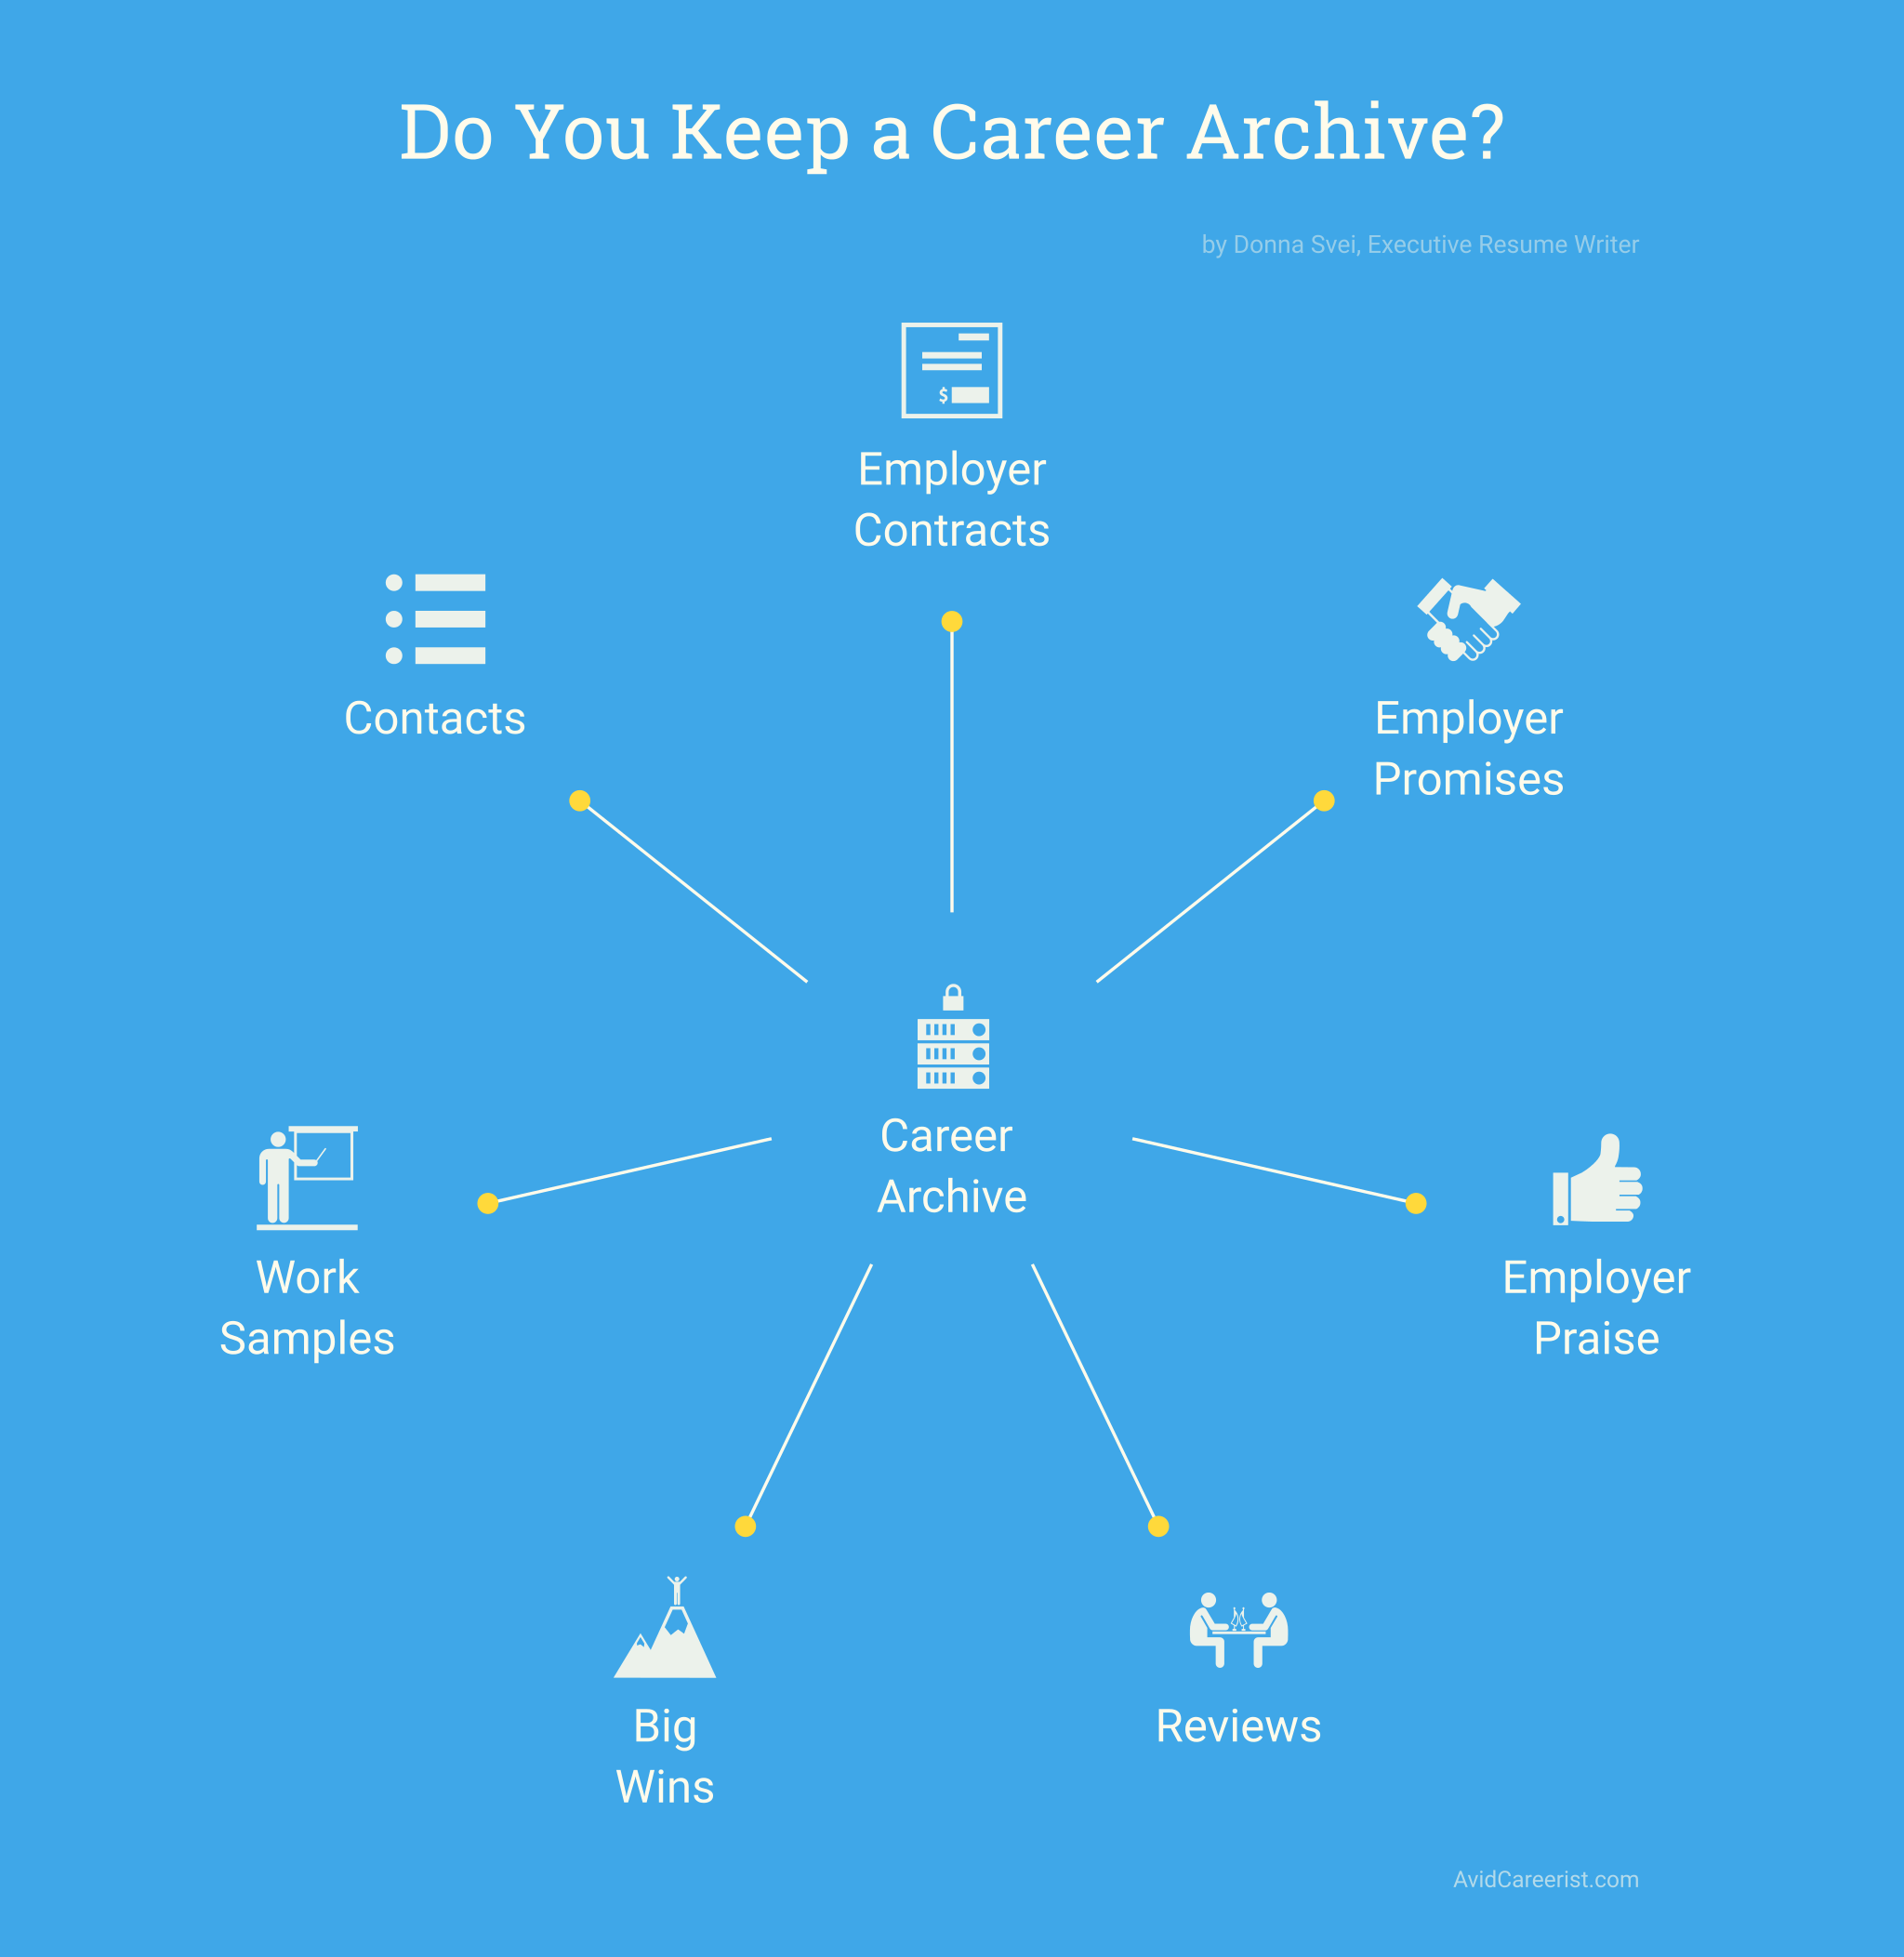 Elements of a Career Archive